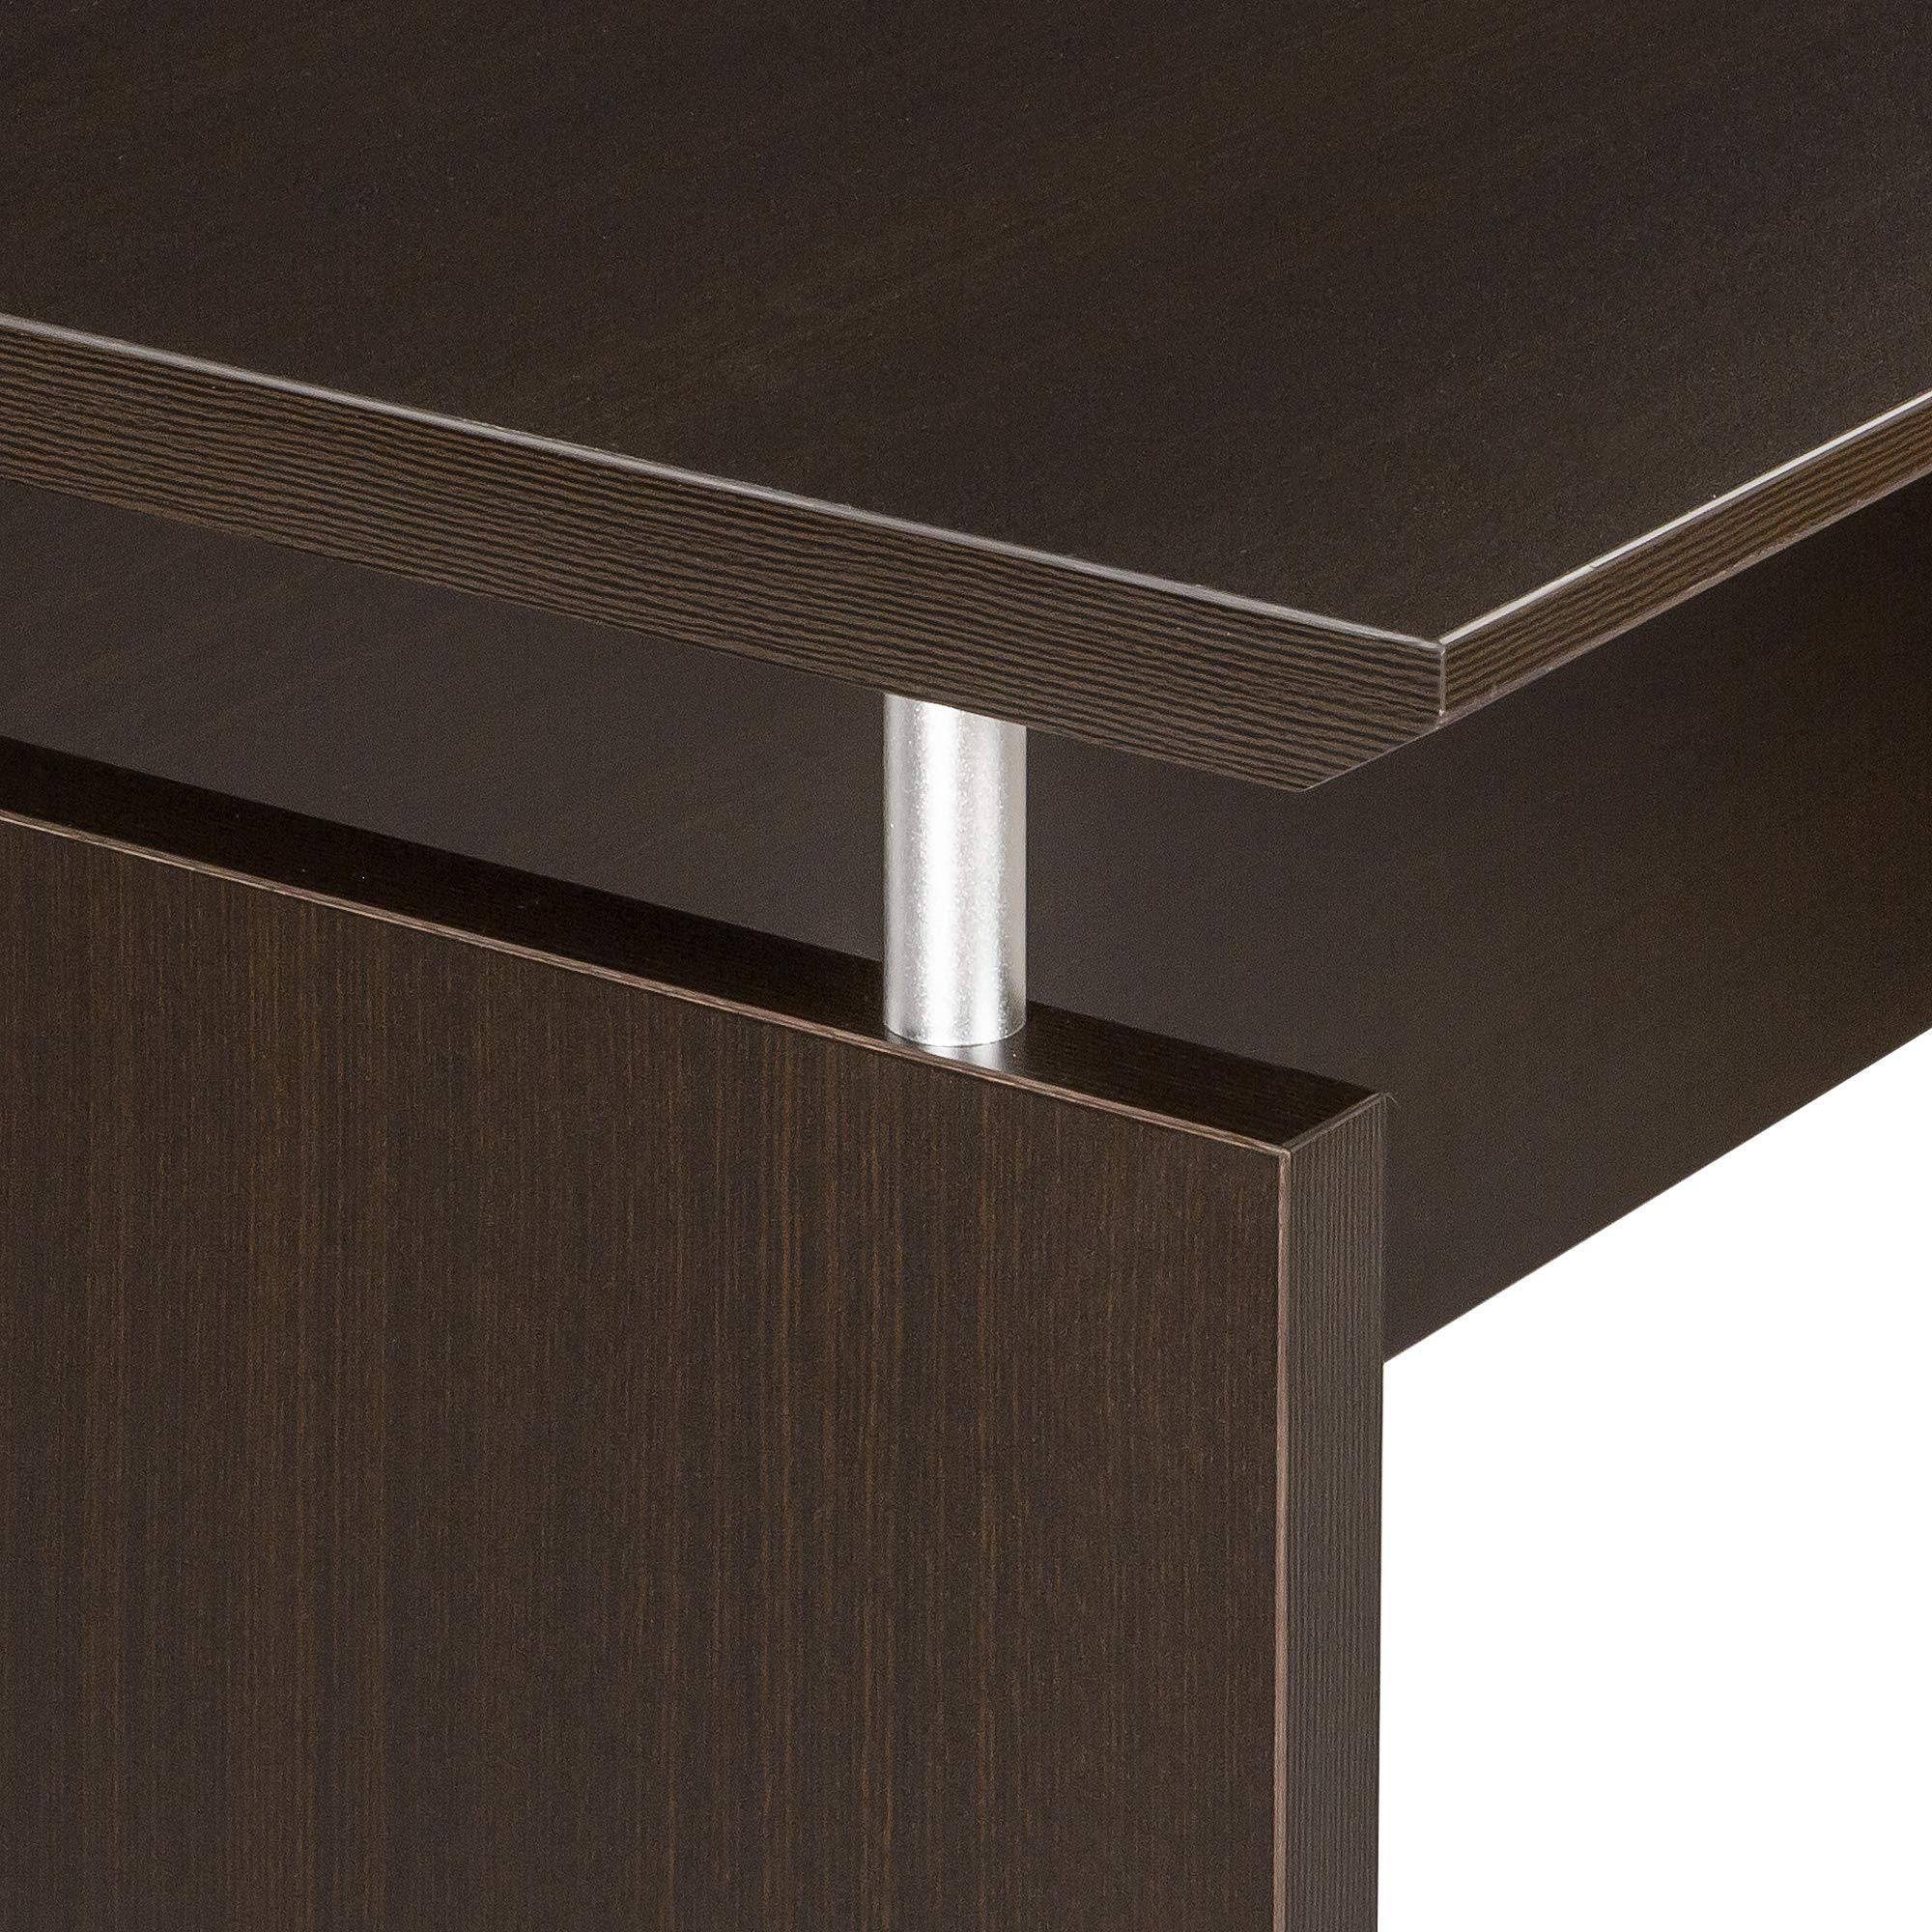 Safco Products MNCNZ72LDC Medina Credenza, 72'', Mocha by Safco Products (Image #4)